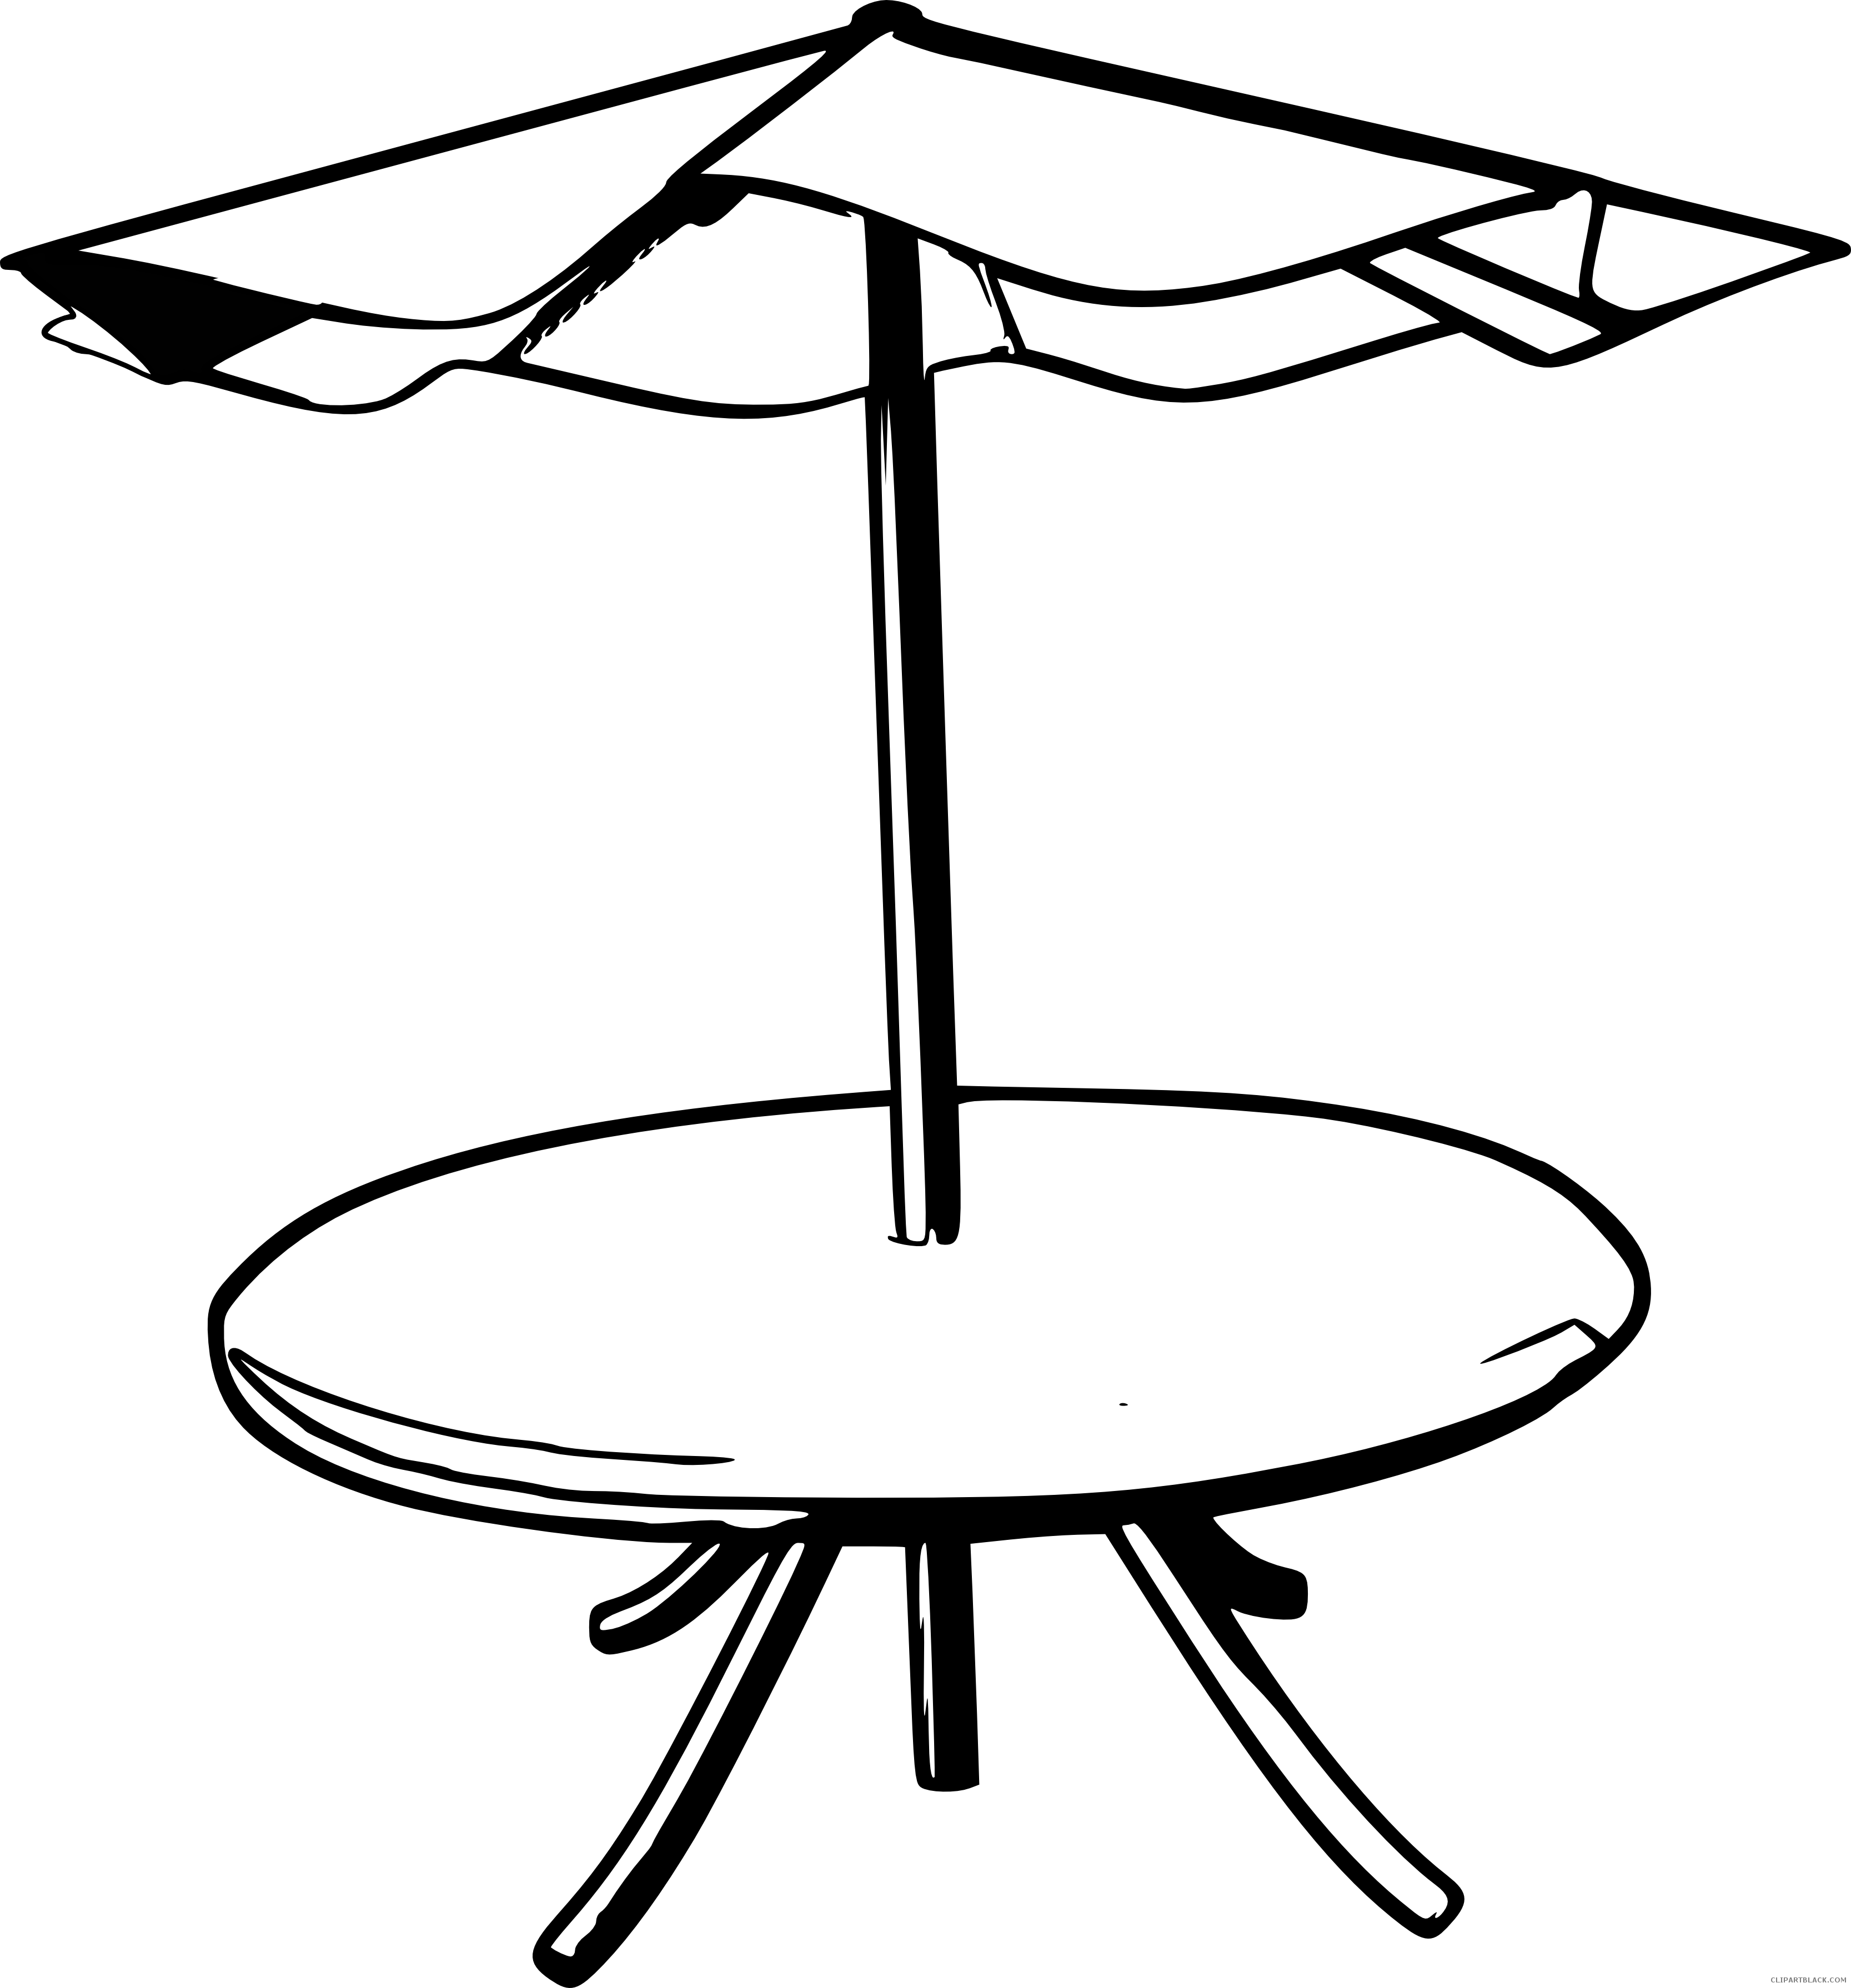 Clipart umbrella drawing. Black and white clipartblack